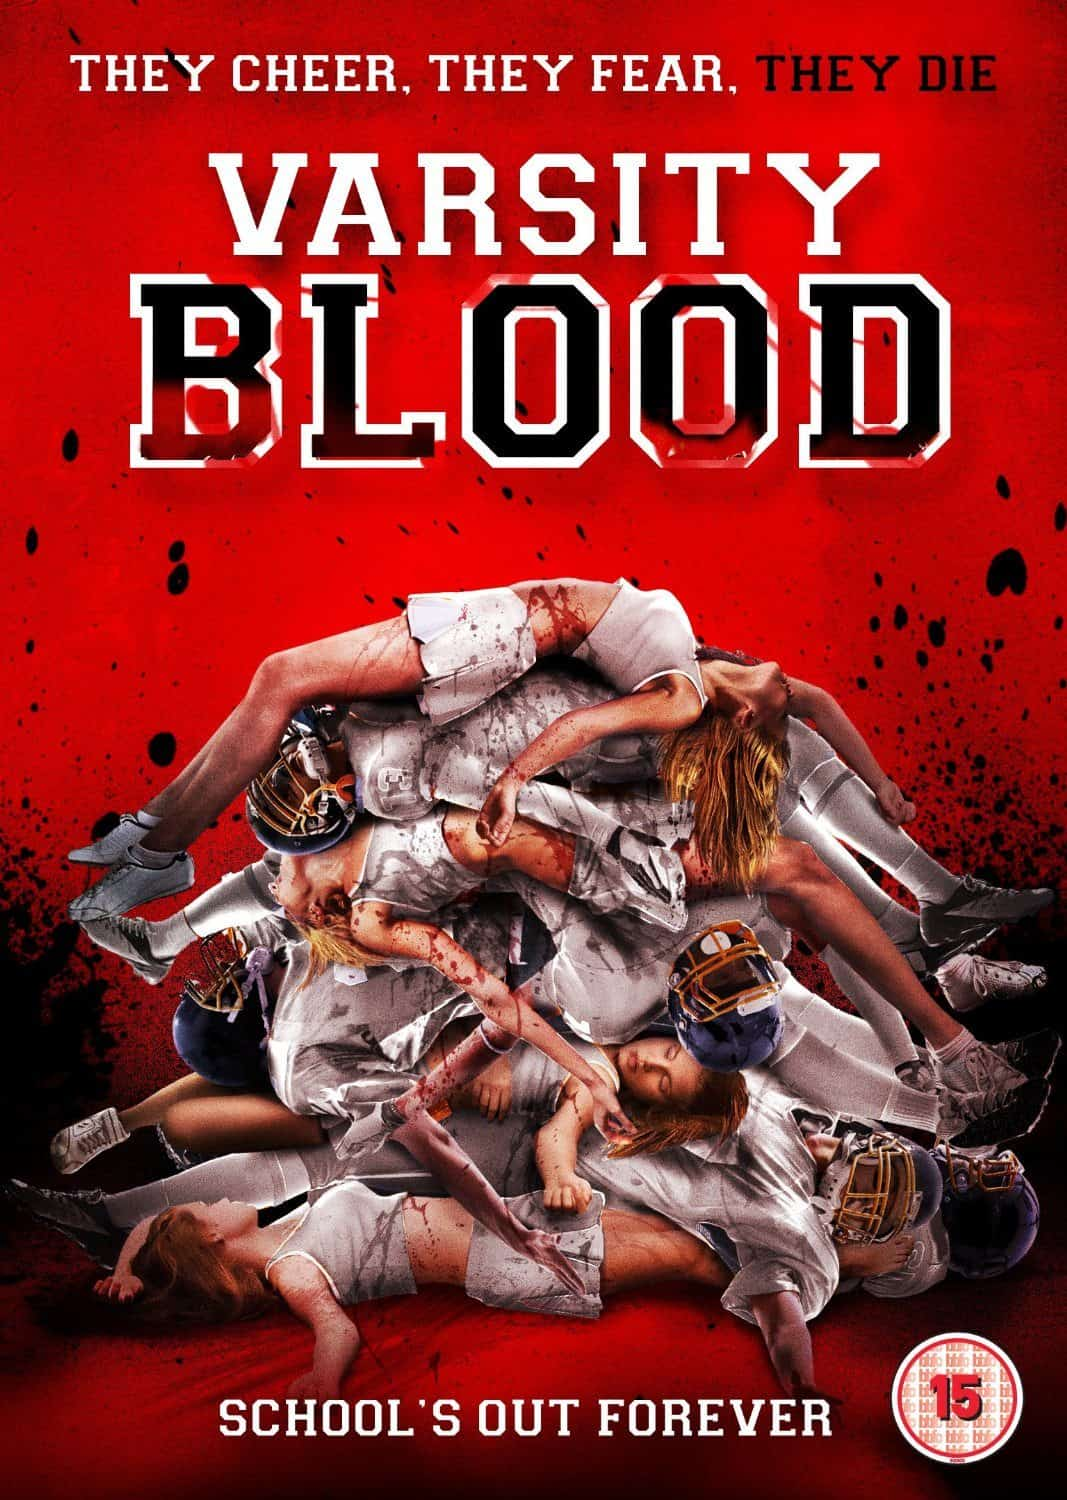 Horror Movie Review: Varsity Blood (2014)